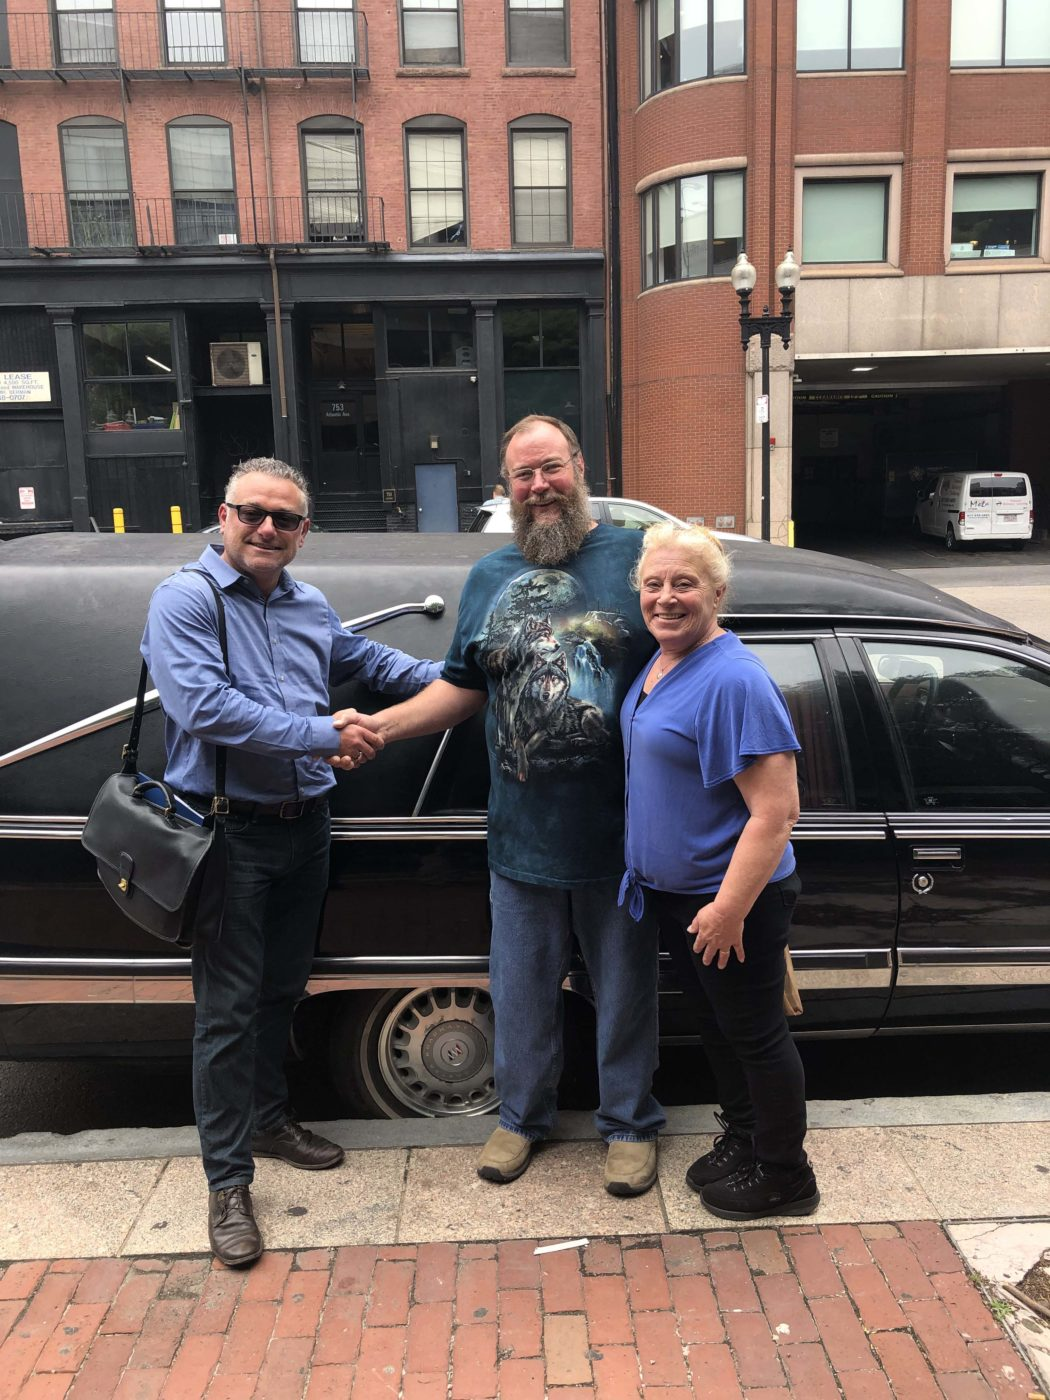 New Delivery: 1994 Chevy Caprice Classic Used Hearse Delivered to Haunted House in Maine